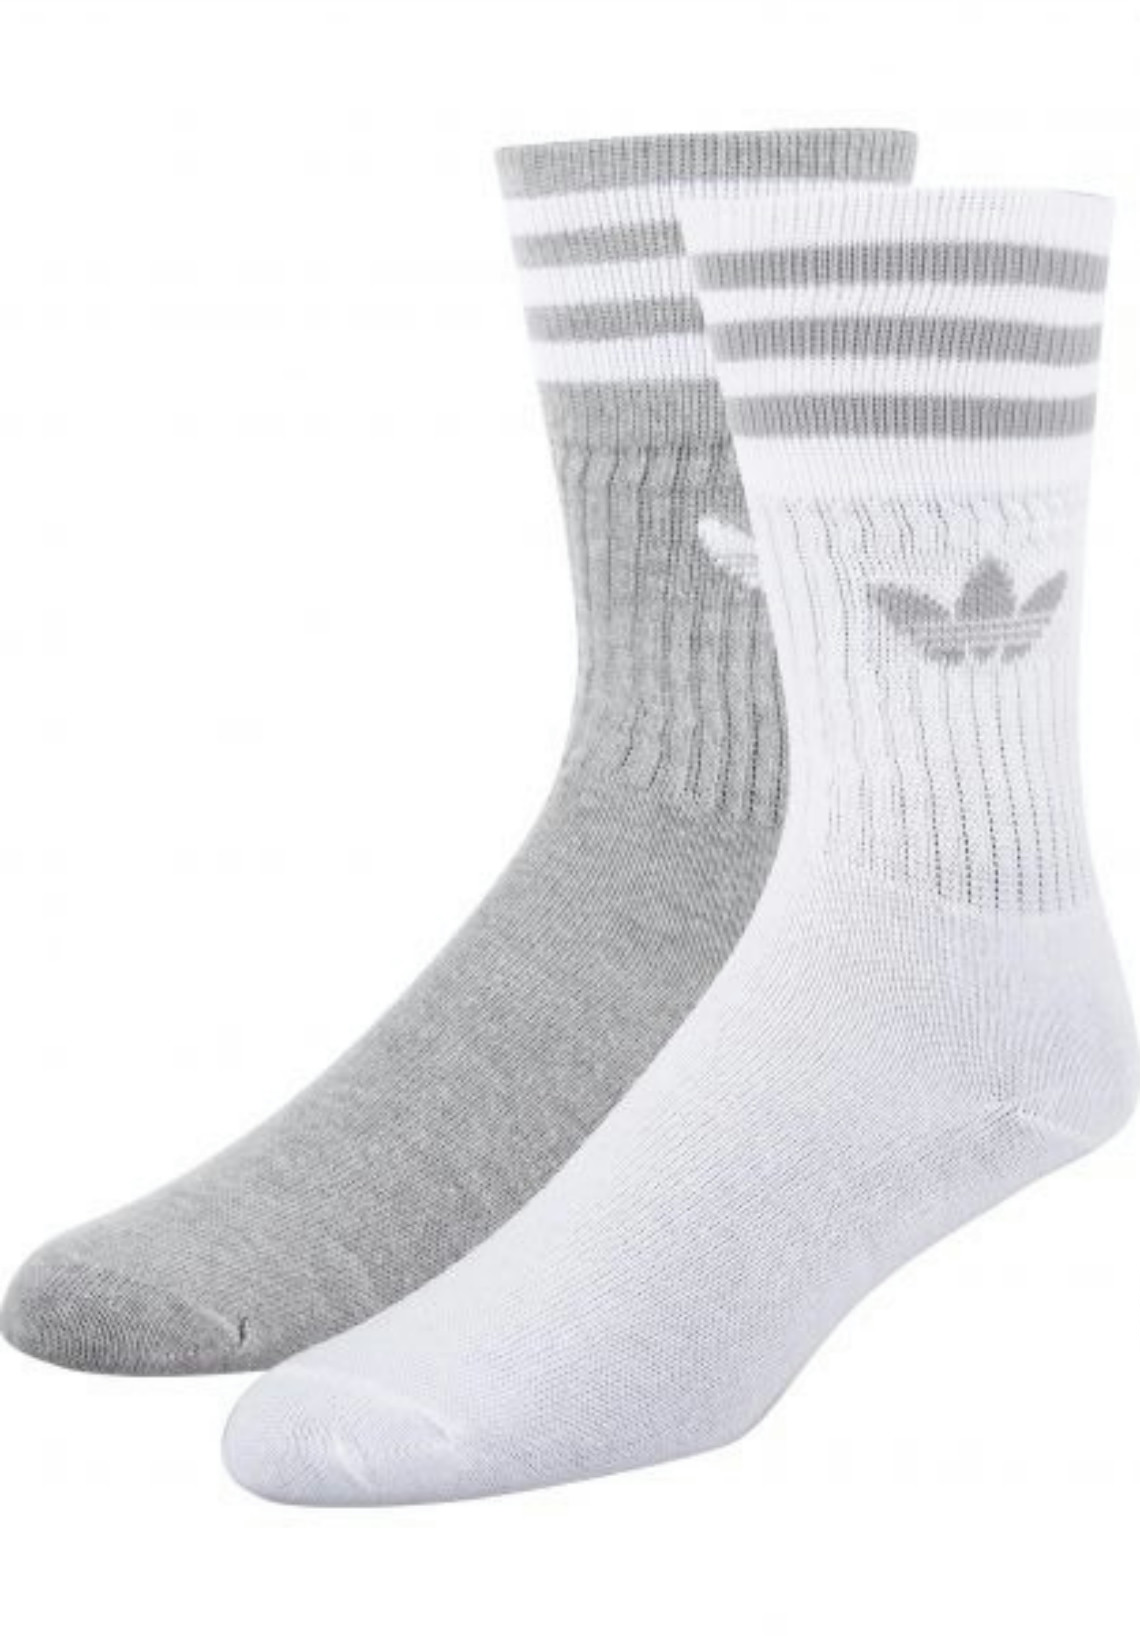 Adidas Chaussettes 3